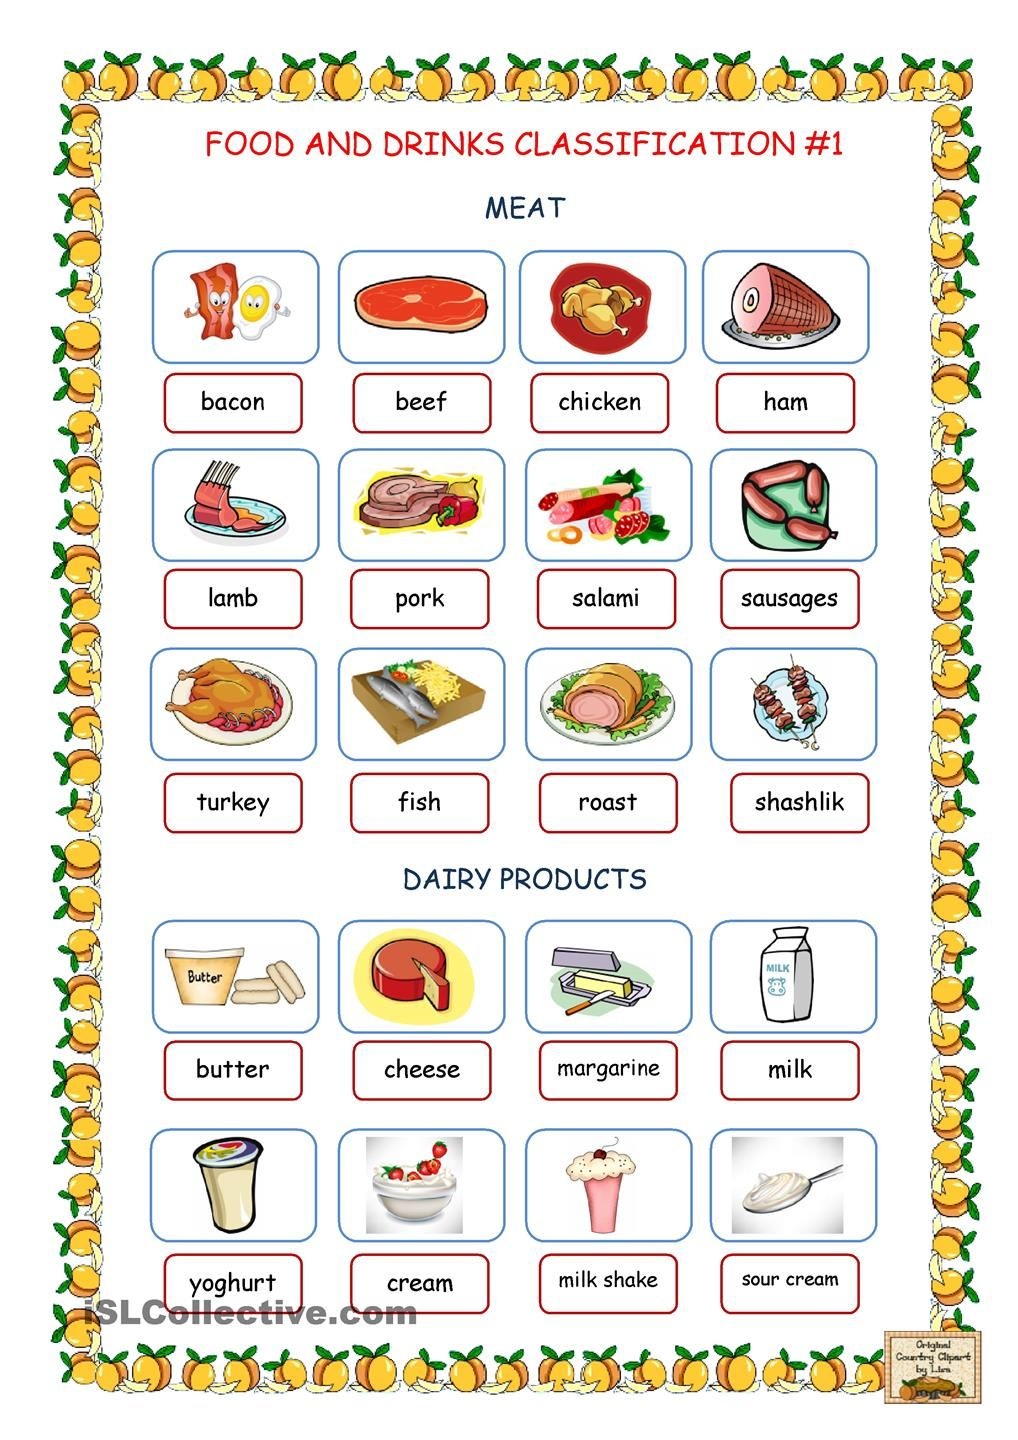 Food & Drinks Classification 1 (Meat, Dairy Products)